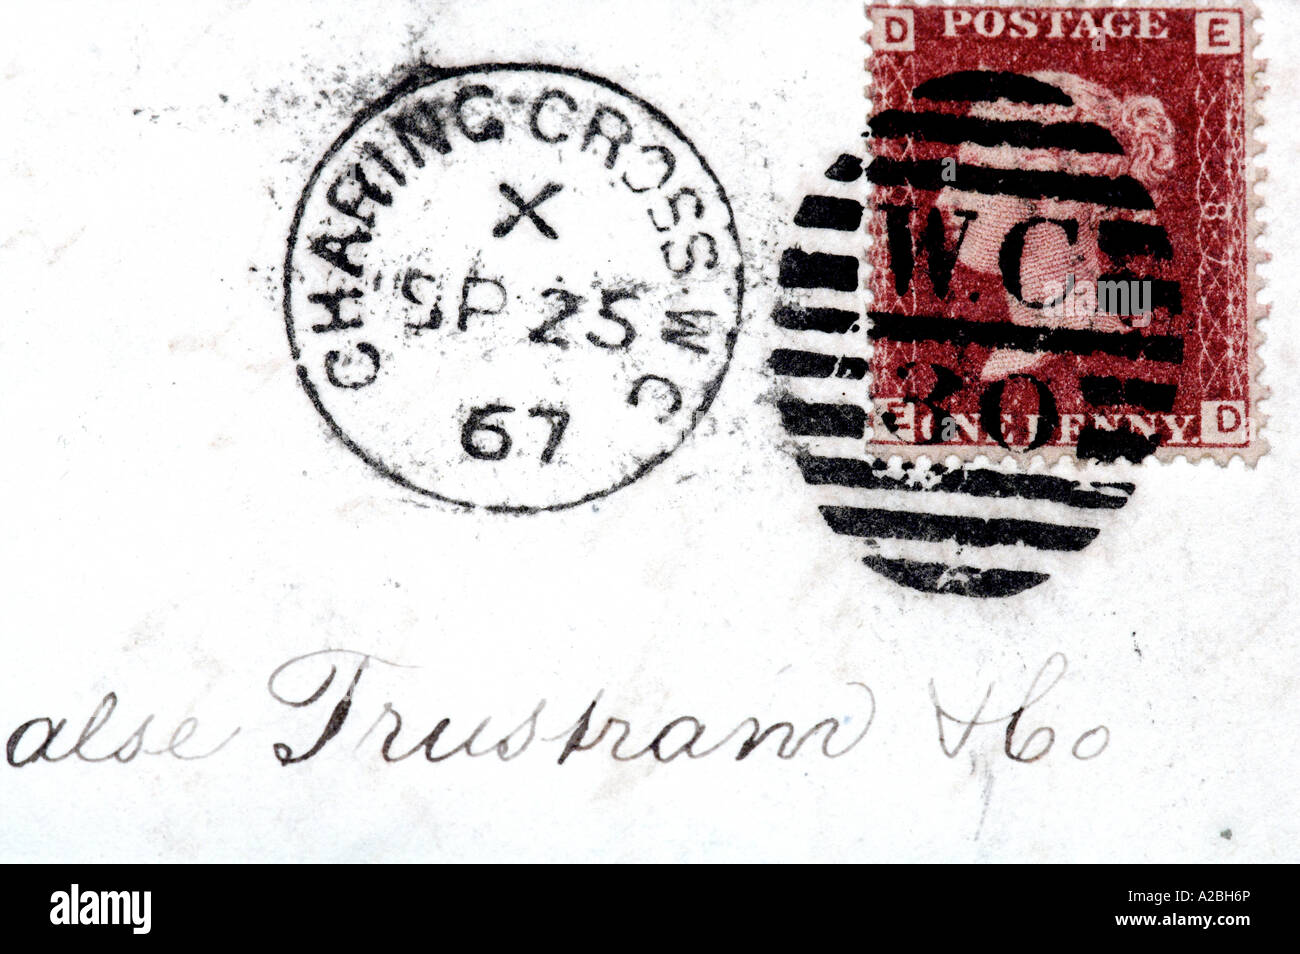 Penny Red Postage Stamp on 1867 Envelope - Stock Image